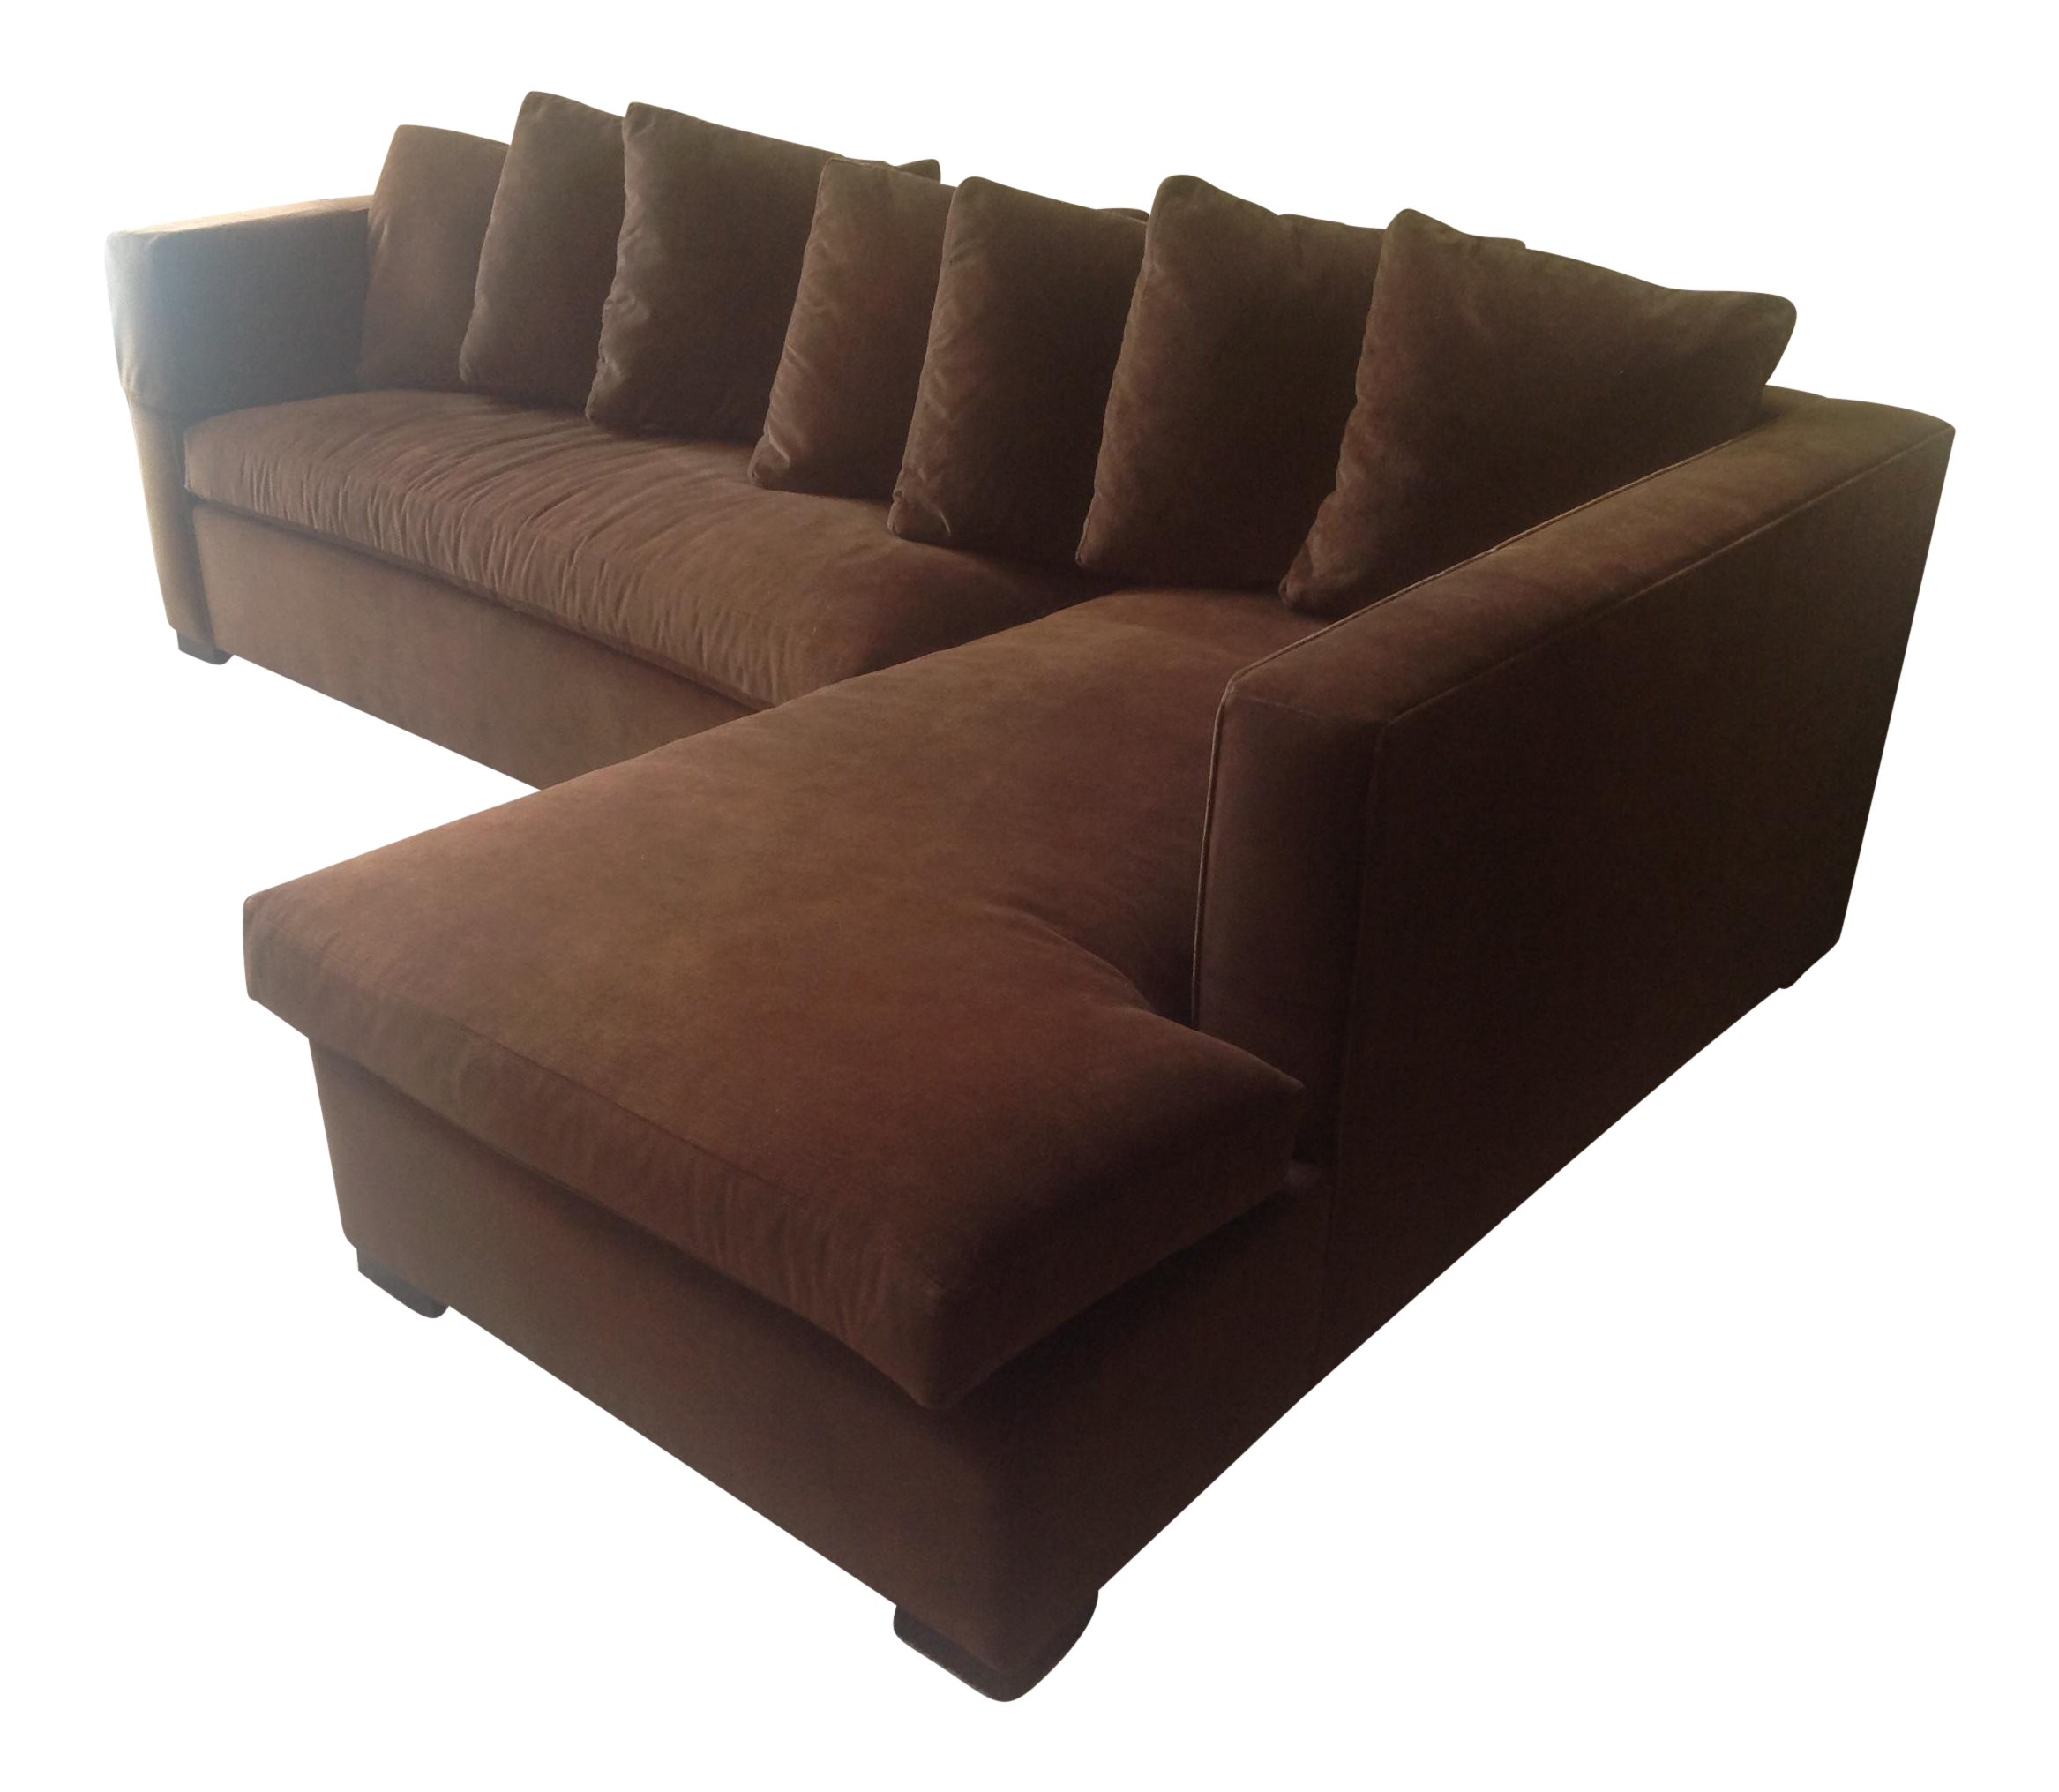 Best of hickory chair sofa marmsweb marmsweb for Sectional sofa hickory chair